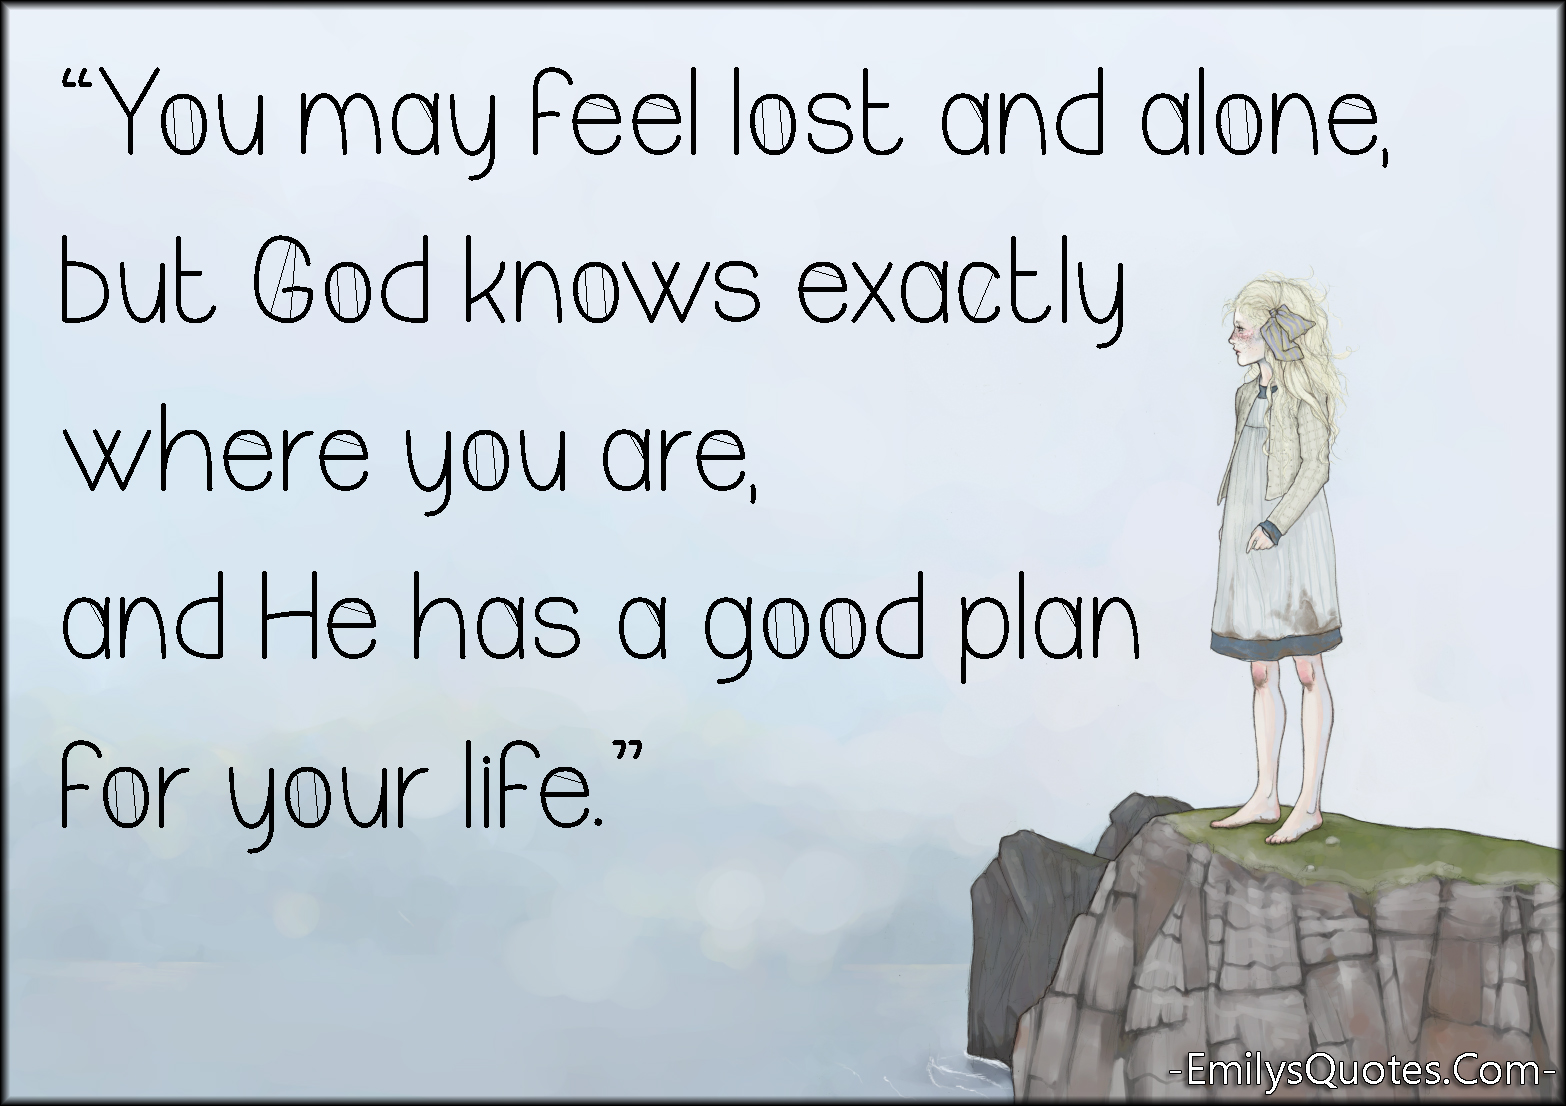 Good Positive Life Quotes You May Feel Lost And Alone But God Knows Exactly Where You Are